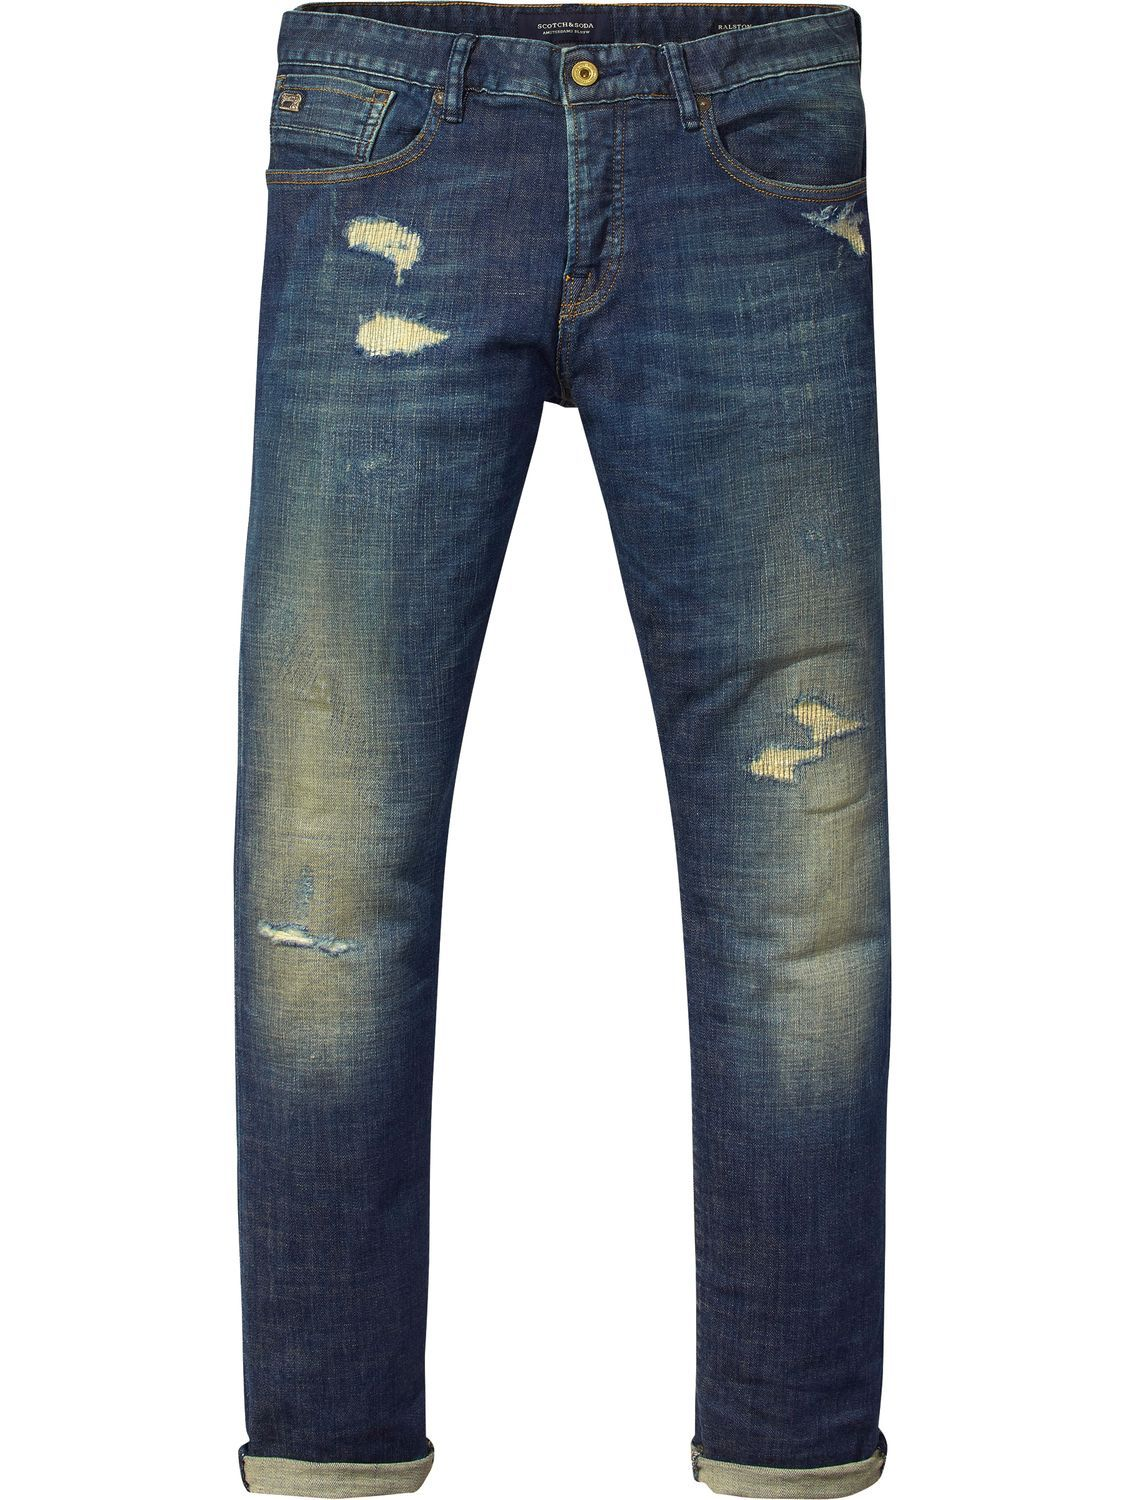 Ralston Ride Out Regular Slim Fit Mens Outfits Mens Denim Mens Jeans